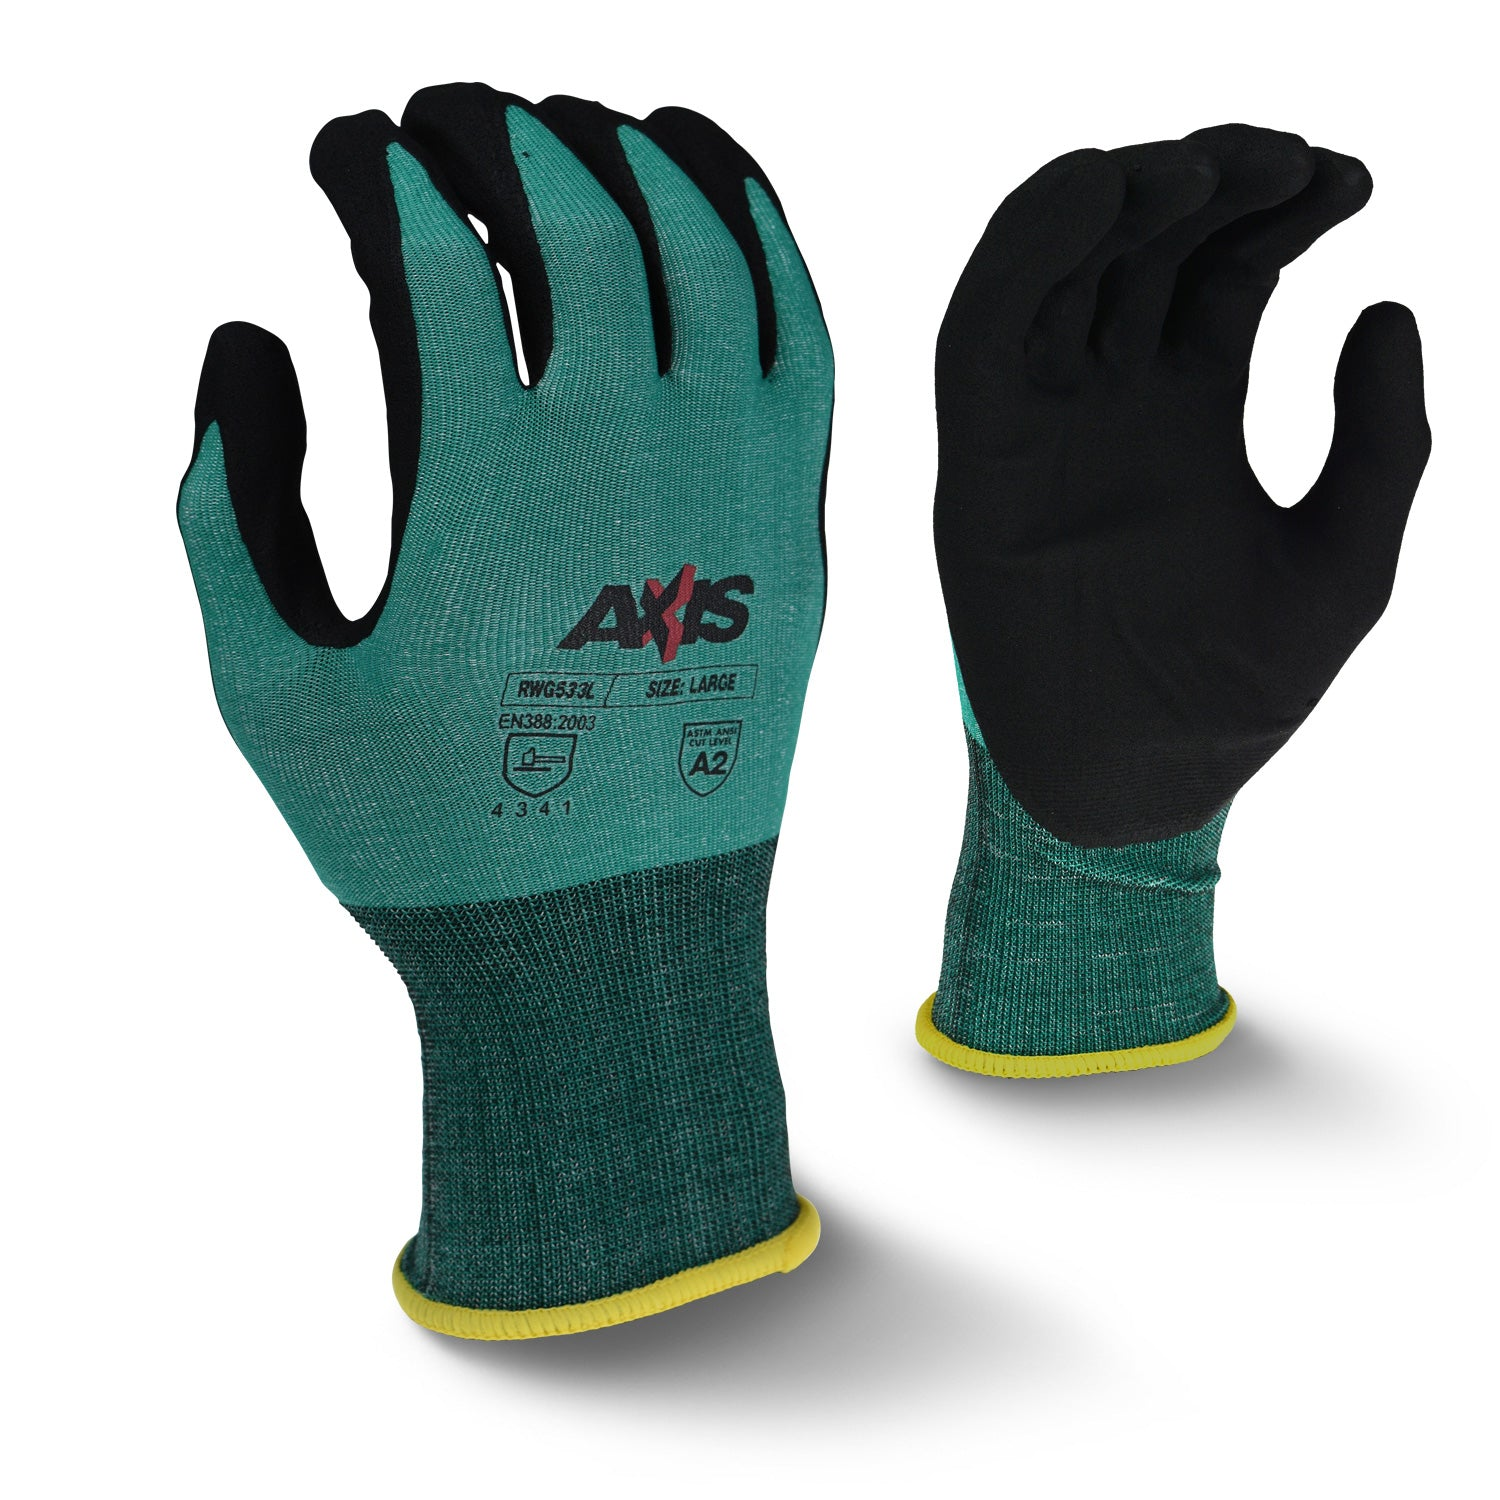 Cut Protection Coated Glove